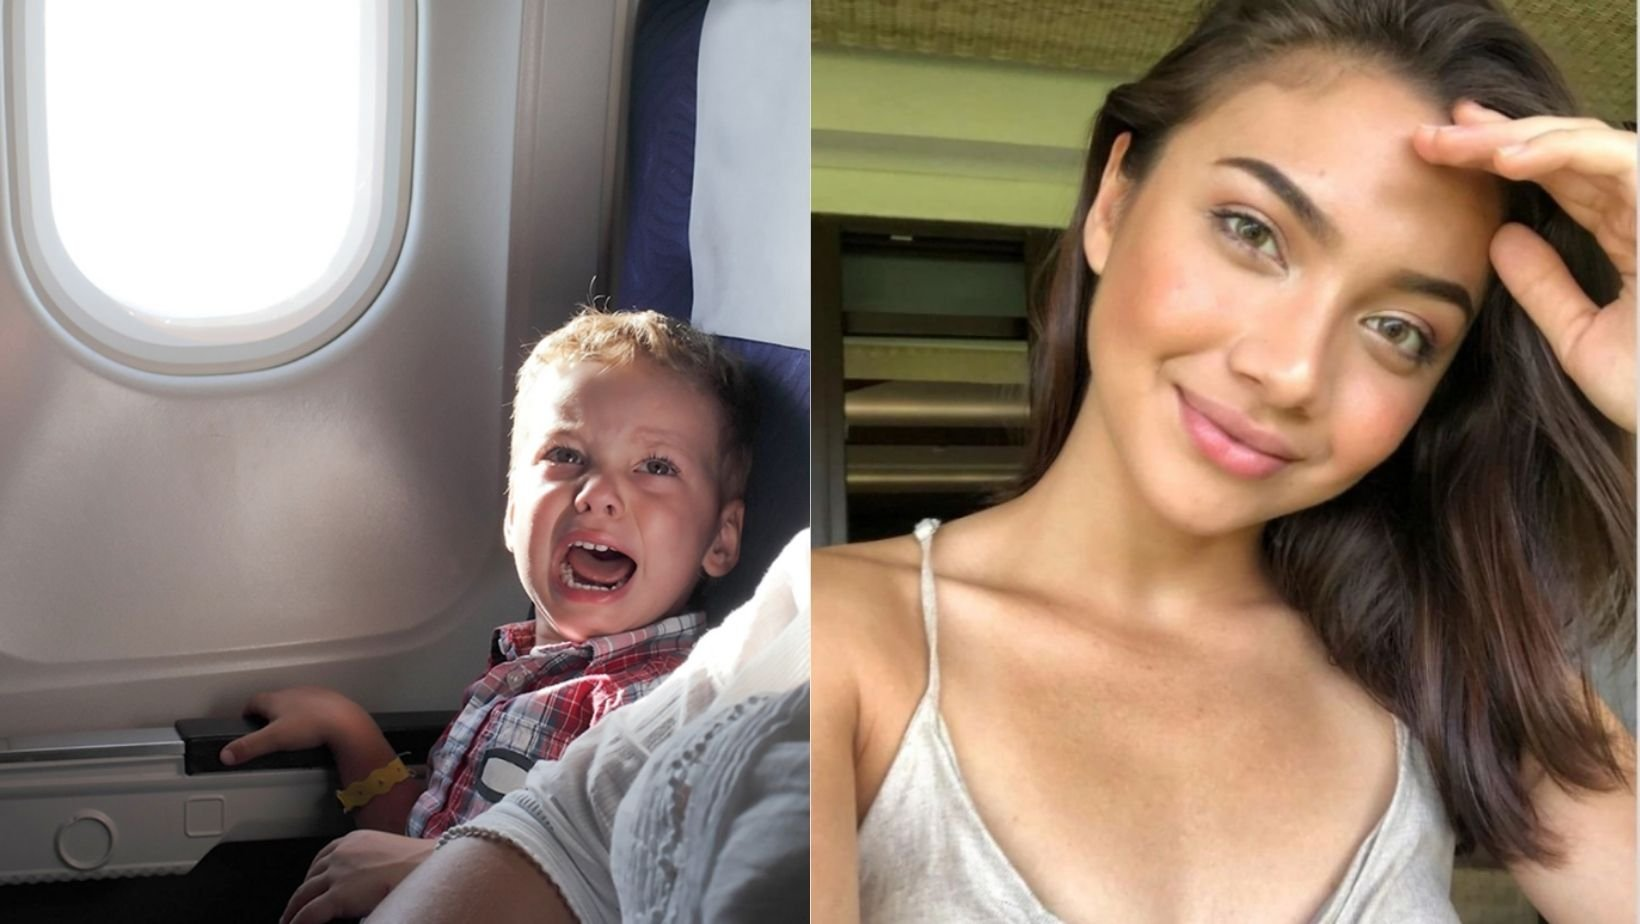 small joys thumbnail 2 7.jpg?resize=1200,630 - Model Is Lambasted Online After Complaining About Sitting Next To A Crying Baby During A Flight